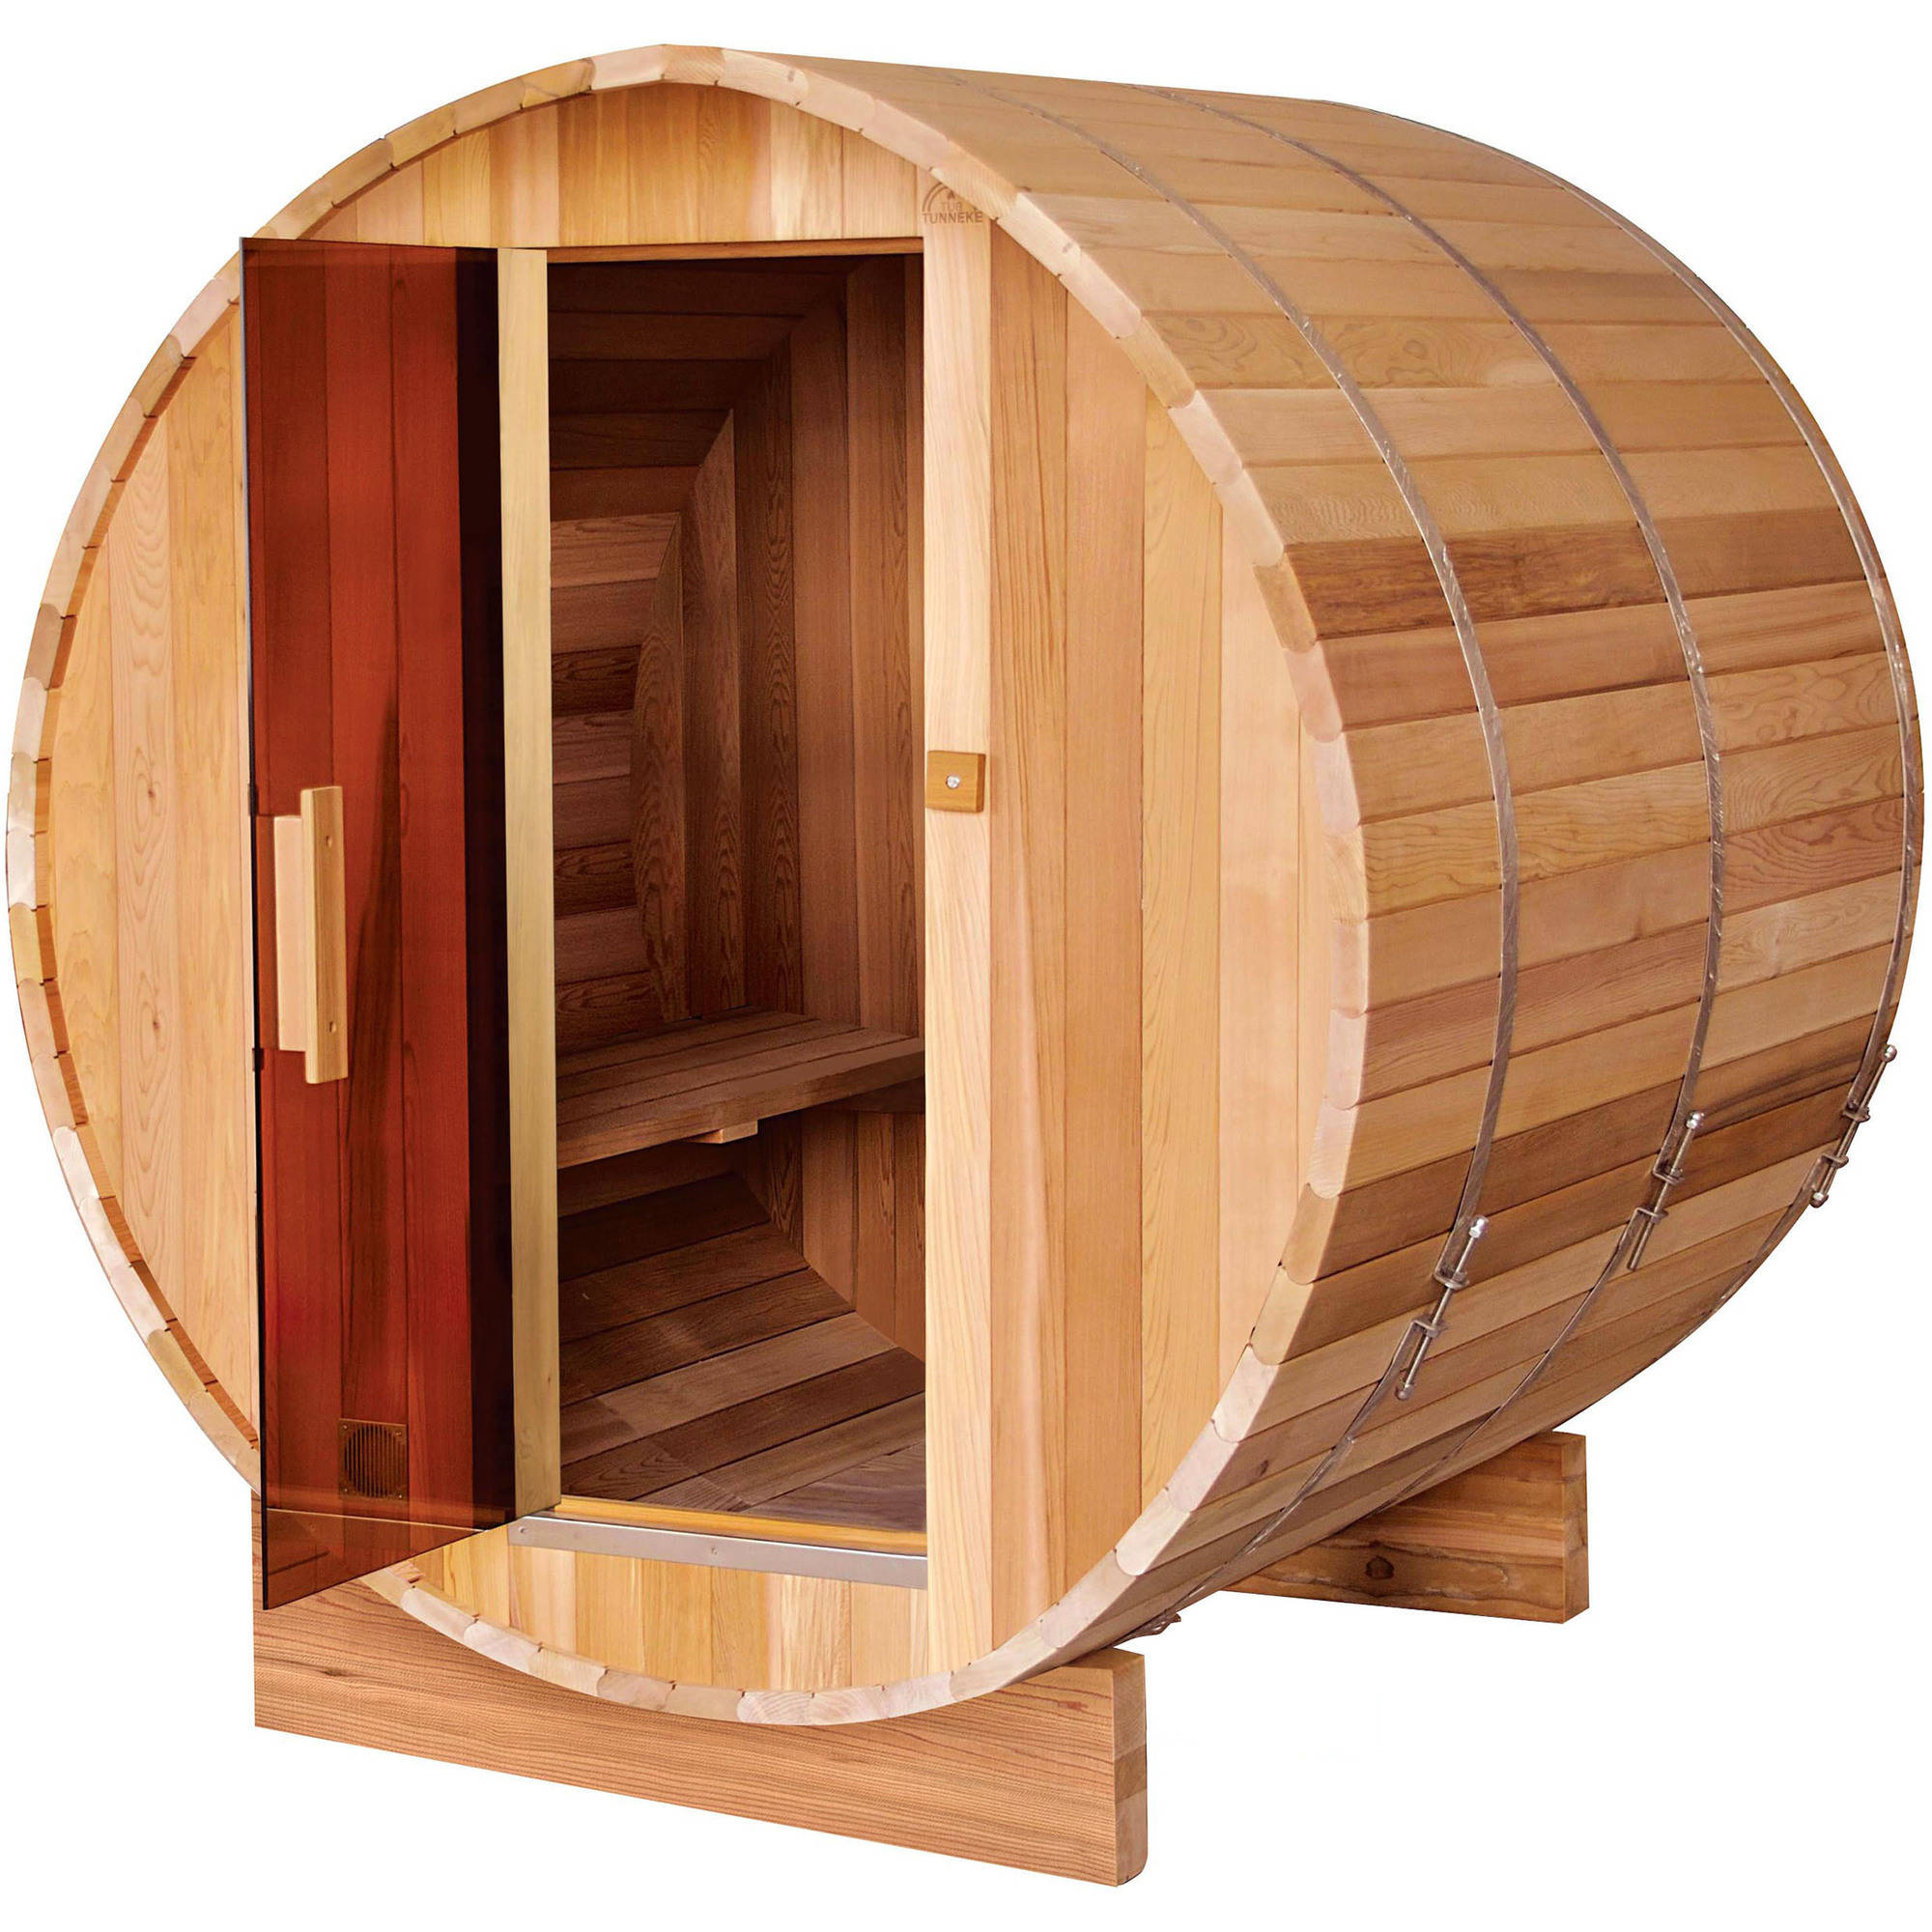 ALEKO SB4CEDAR 4 Person Indoor and Outdoor Western Red Rustic Cedar Dry Wet Barrel Sauna... by ALEKO